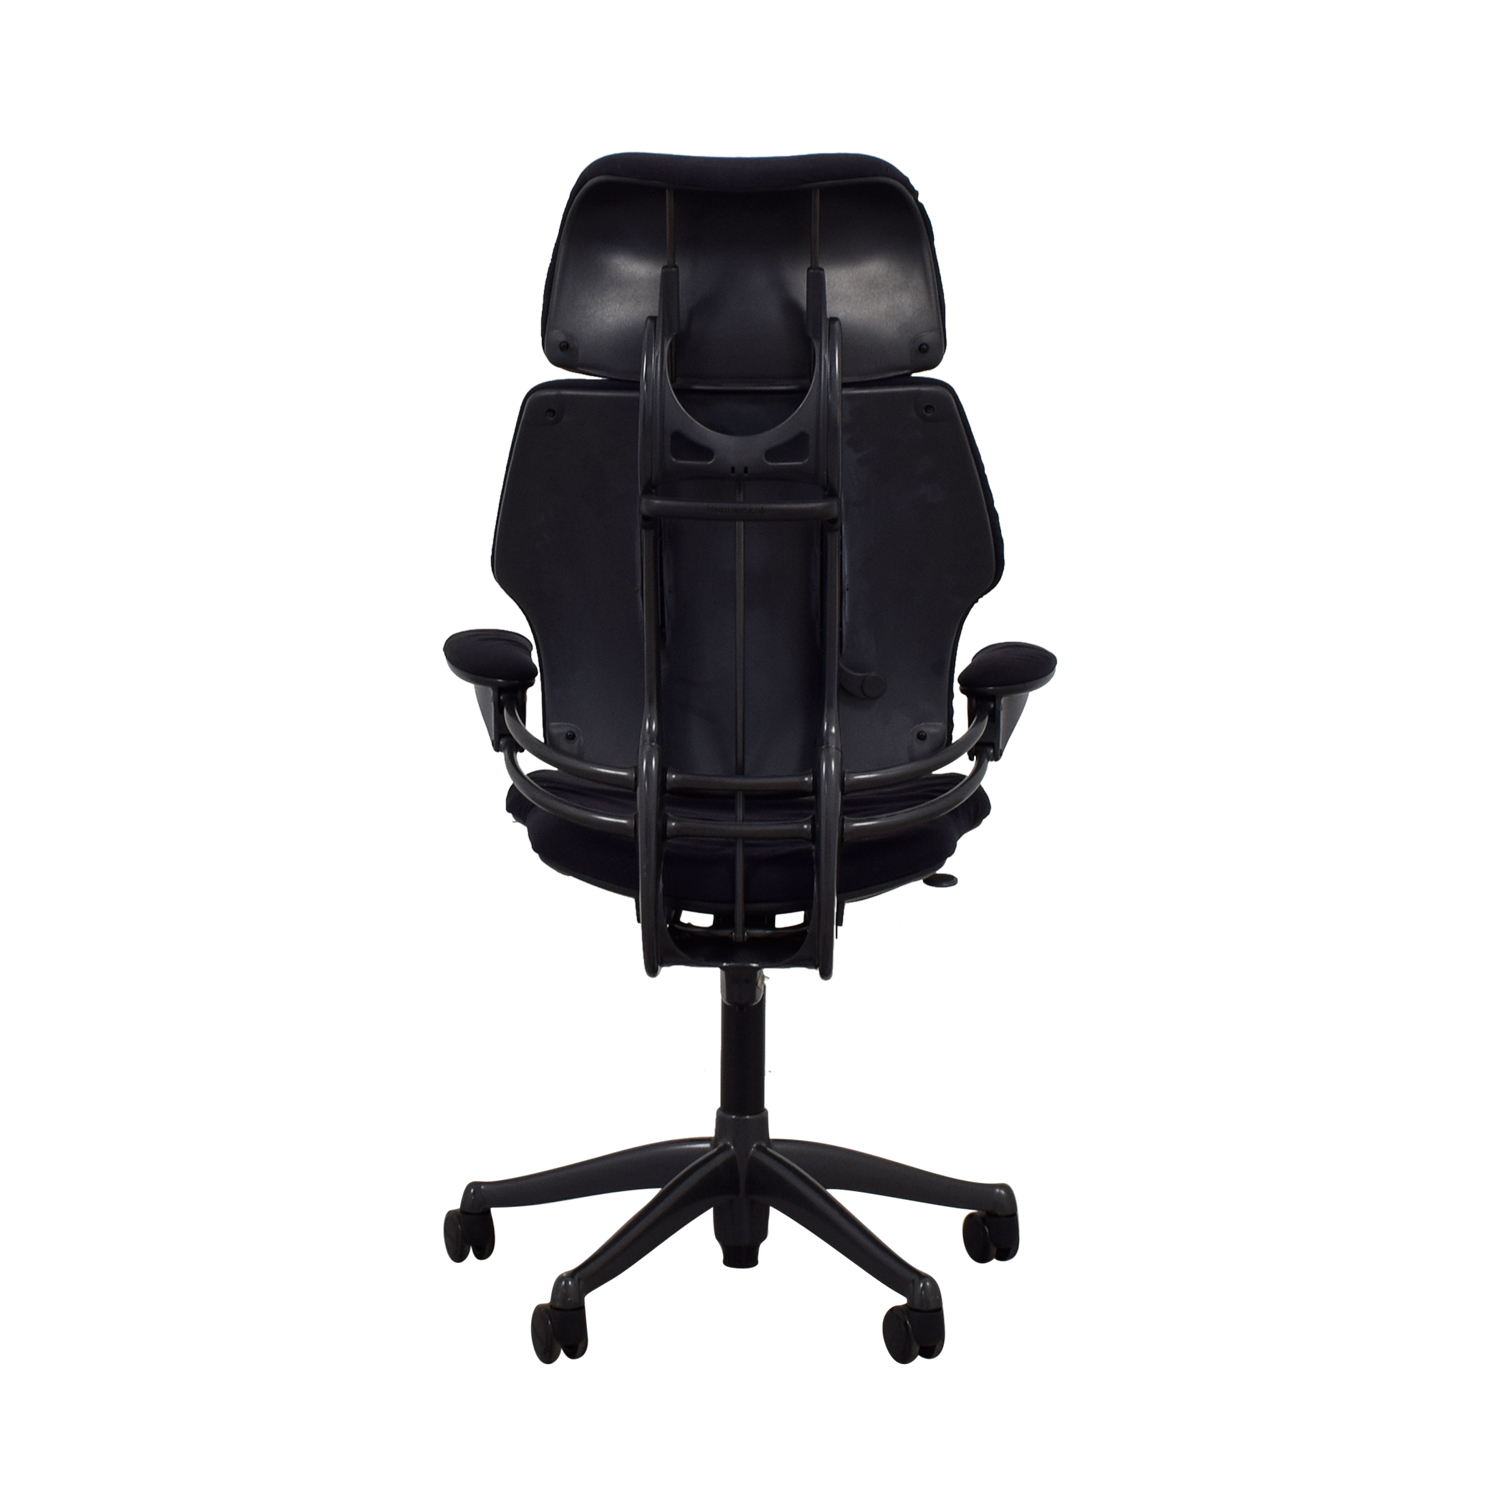 Human Scale Human Scale Black Freedom Chair with Headrest on sale